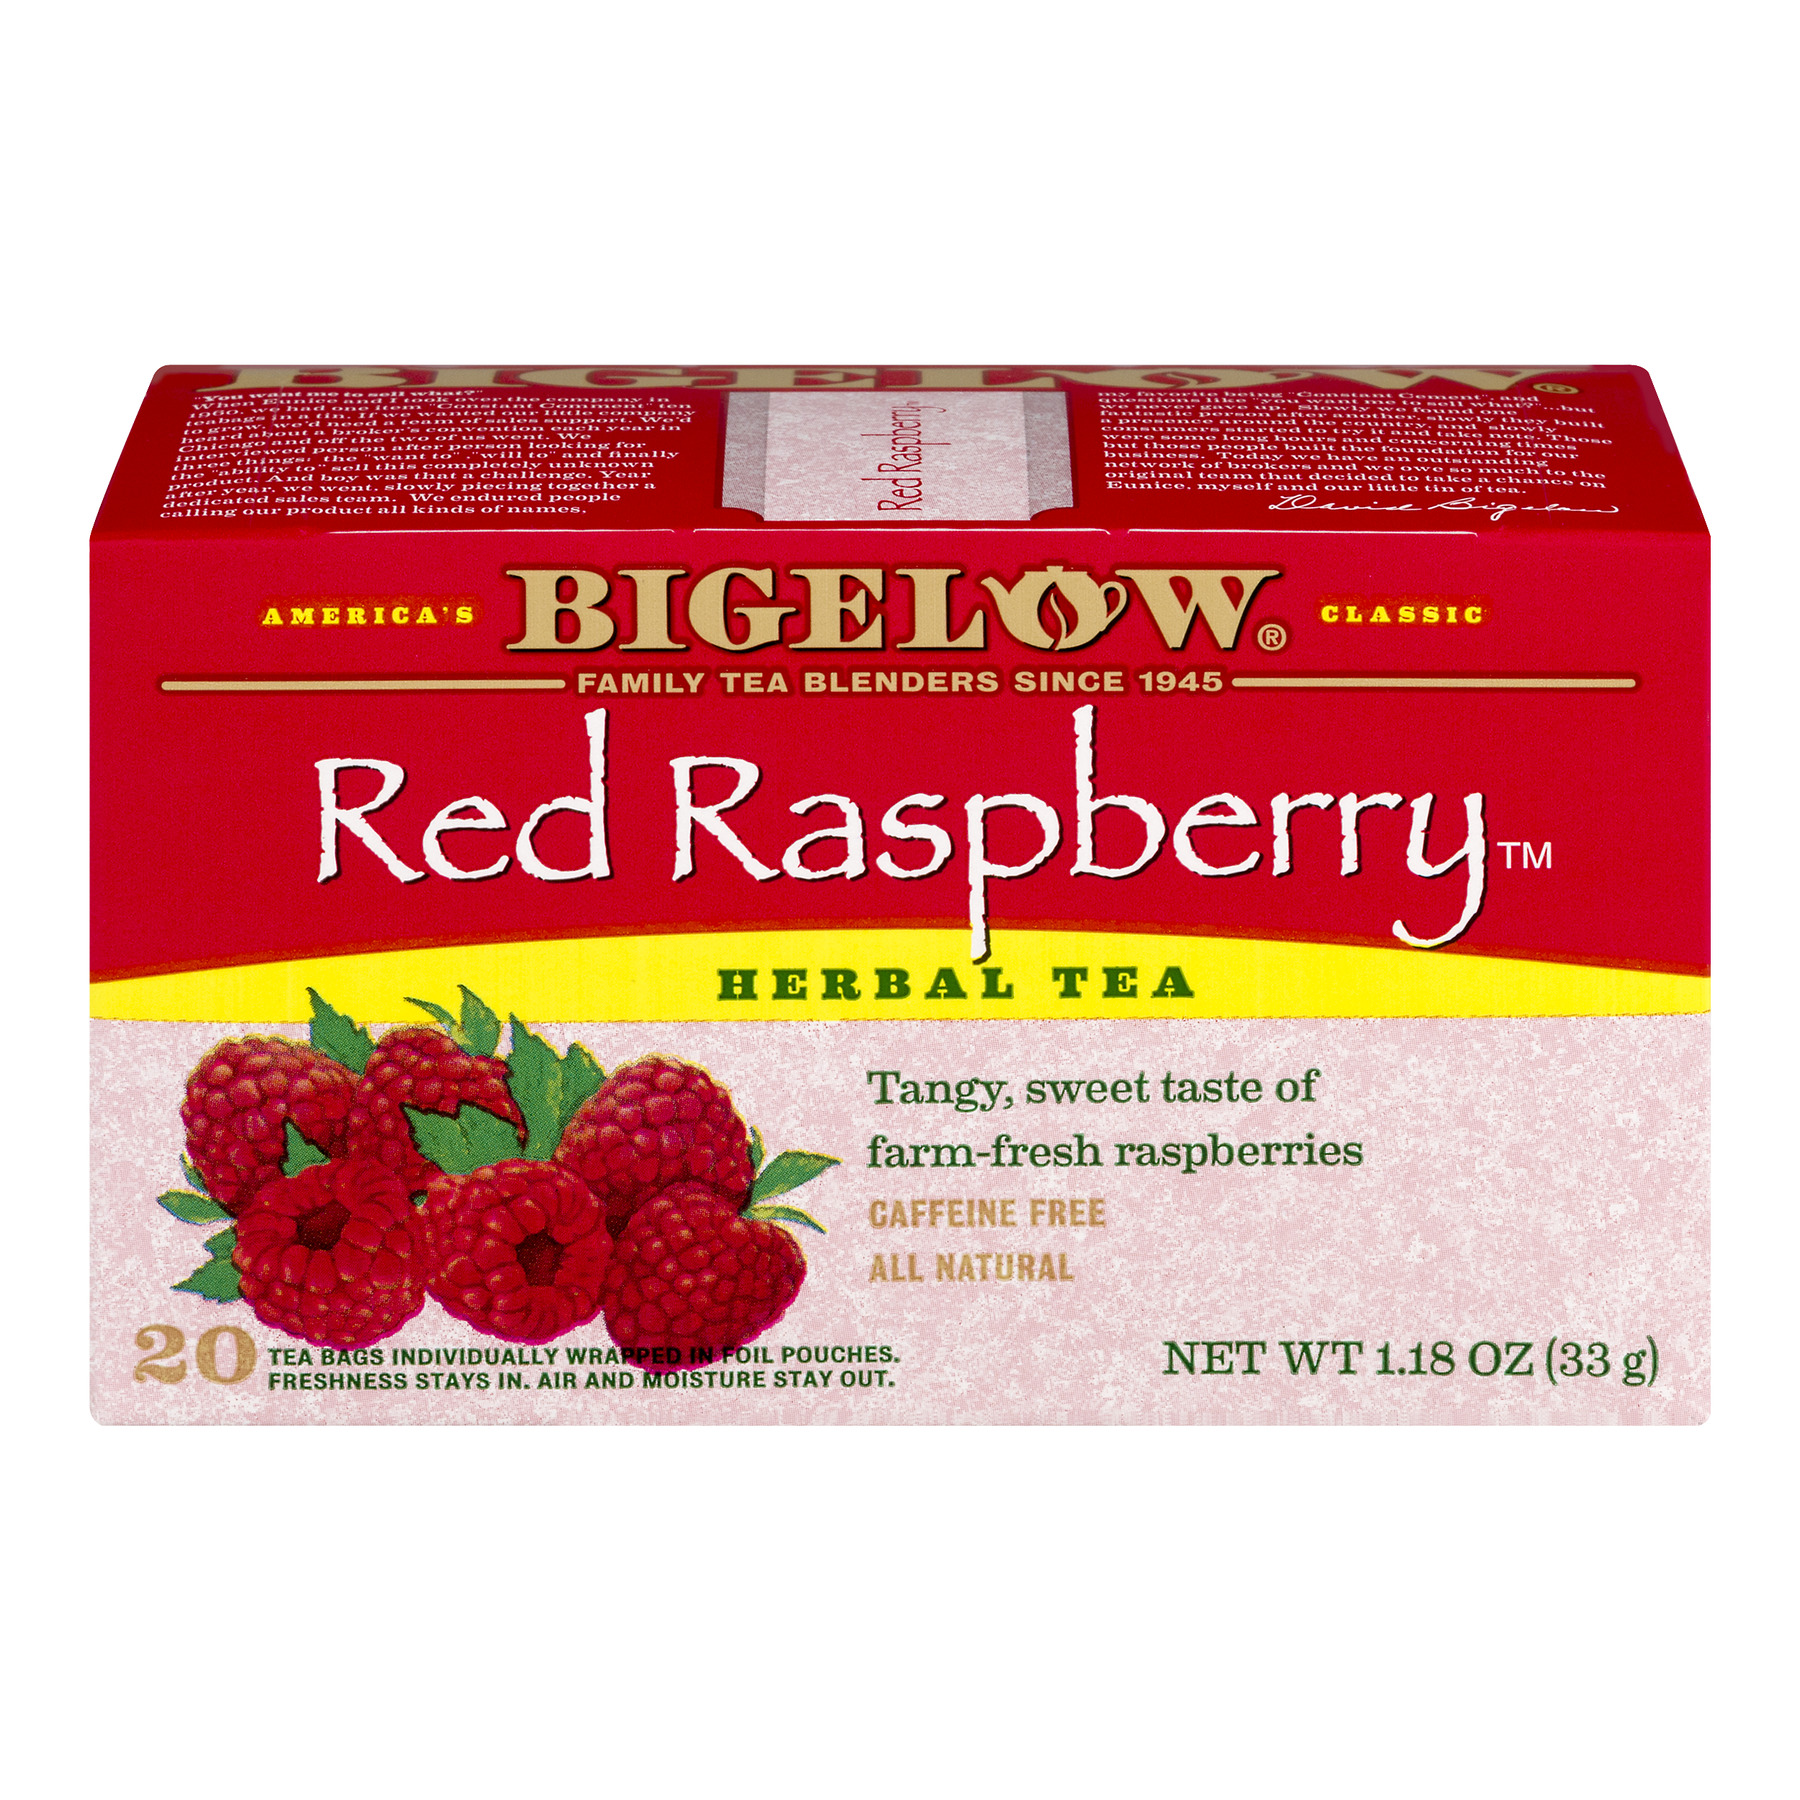 Bigelow Herbal Tea Bags Red Raspberry - 20 CT20.0 OZ